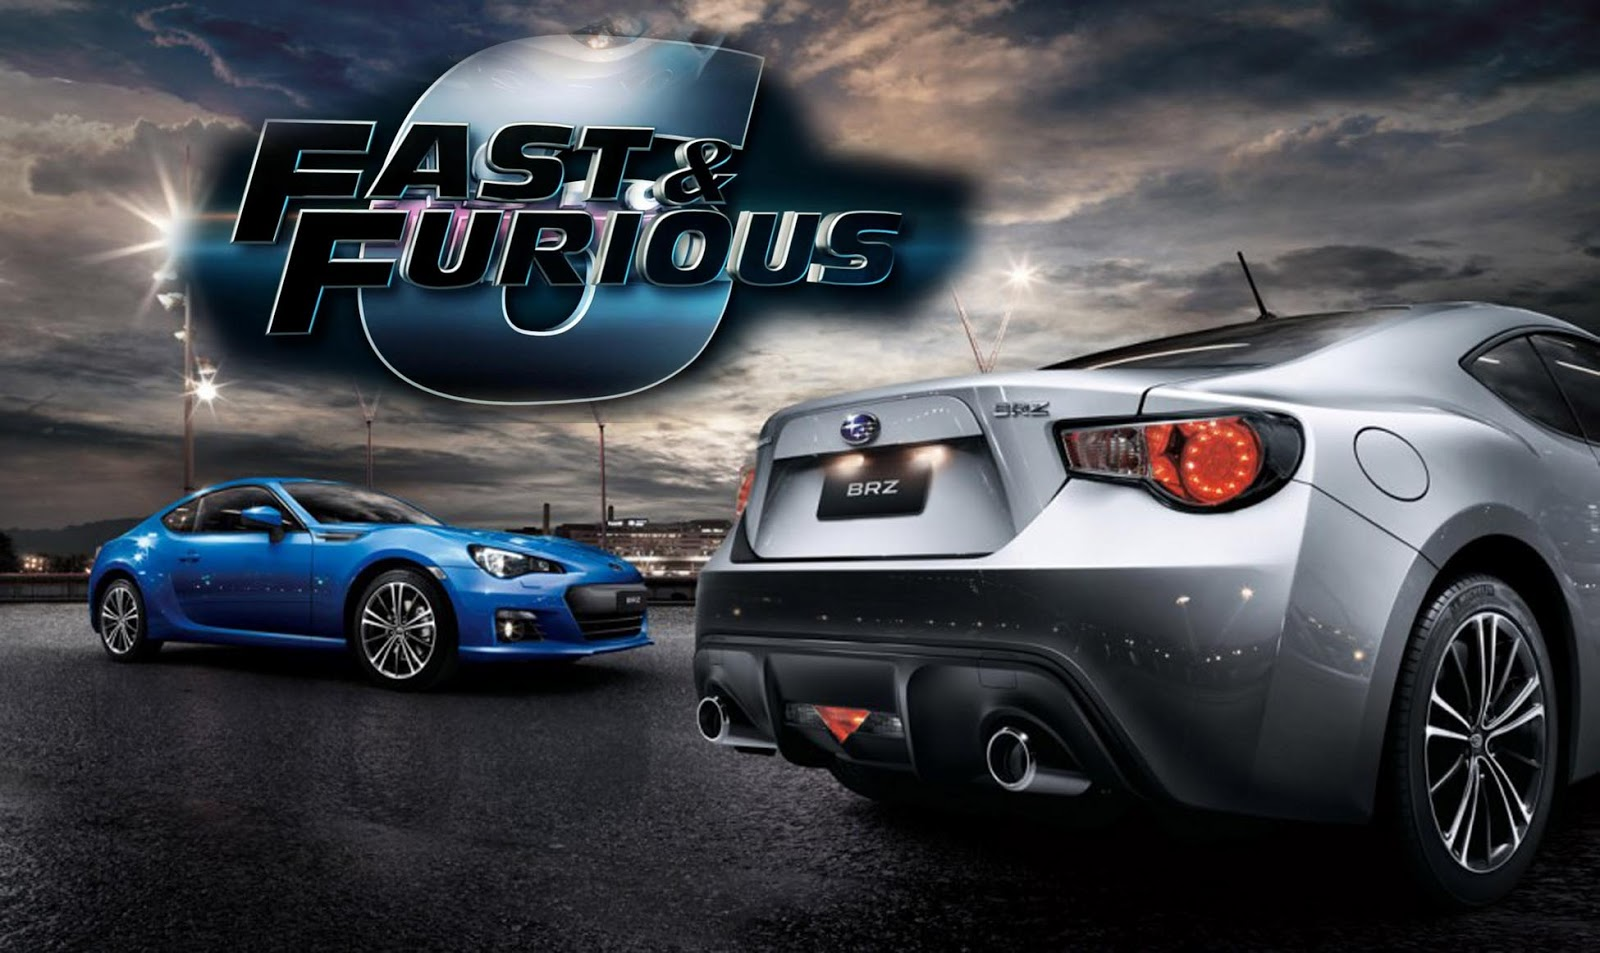 تحميل فيلم fast and furious 6 كامل ومترجم dvd